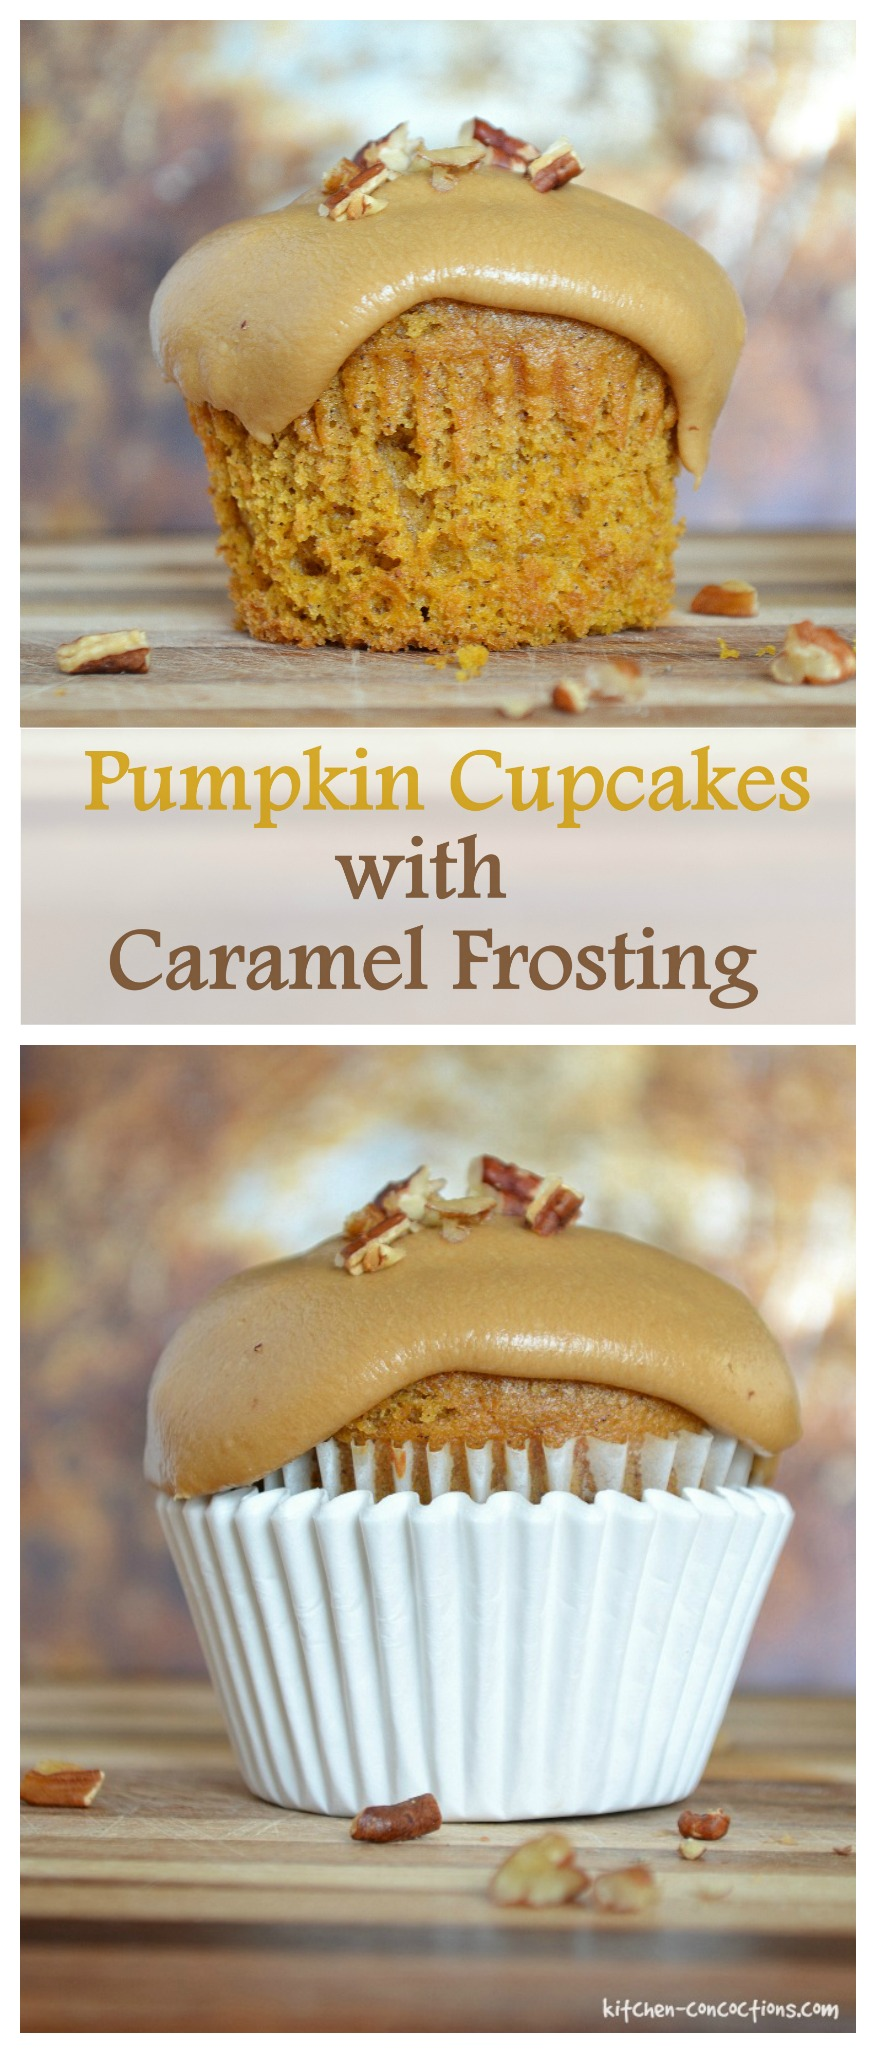 Pumpkin Cupcakes with Caramel Frosting